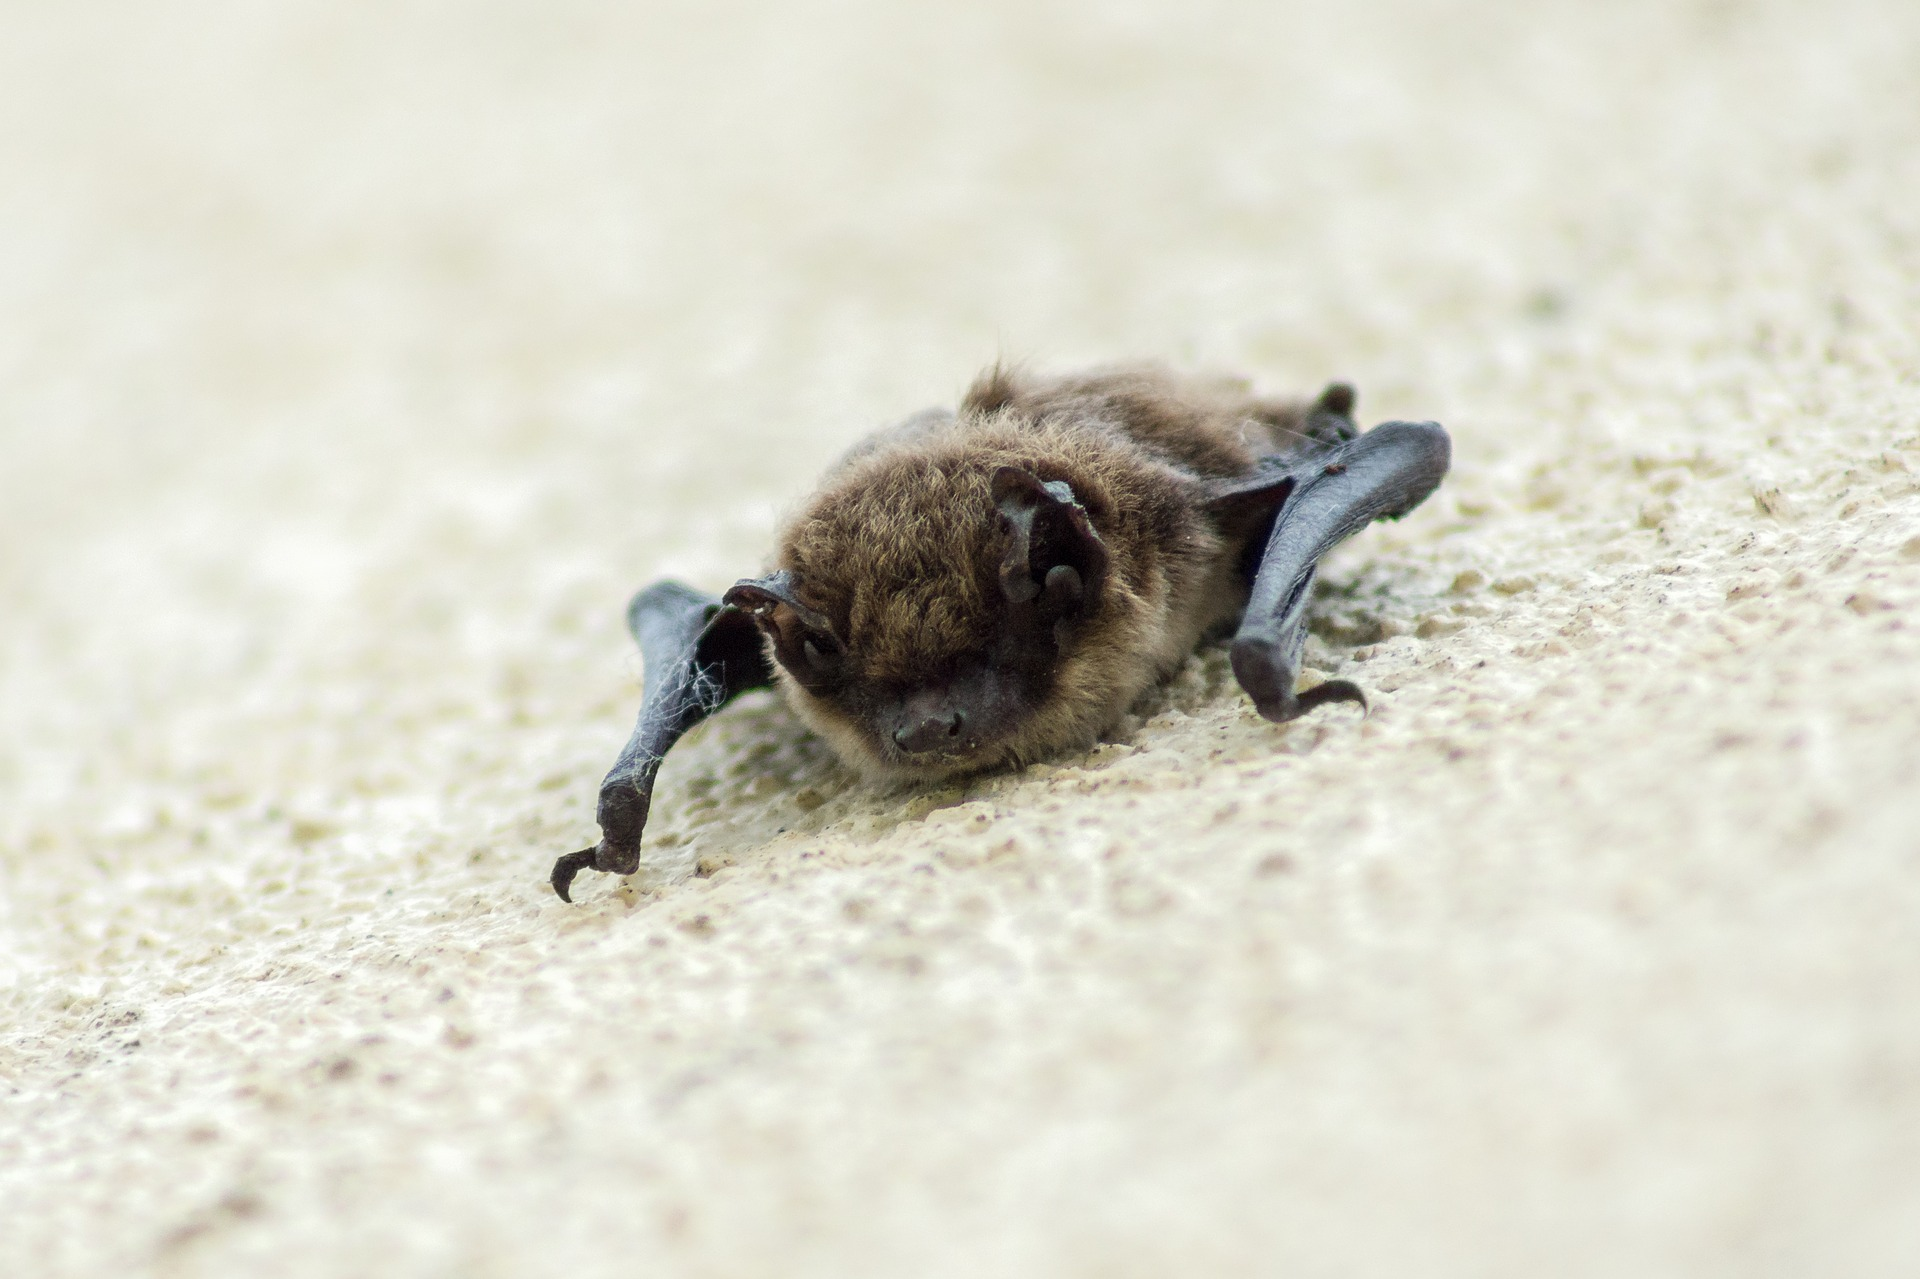 Problems bat cause in your house